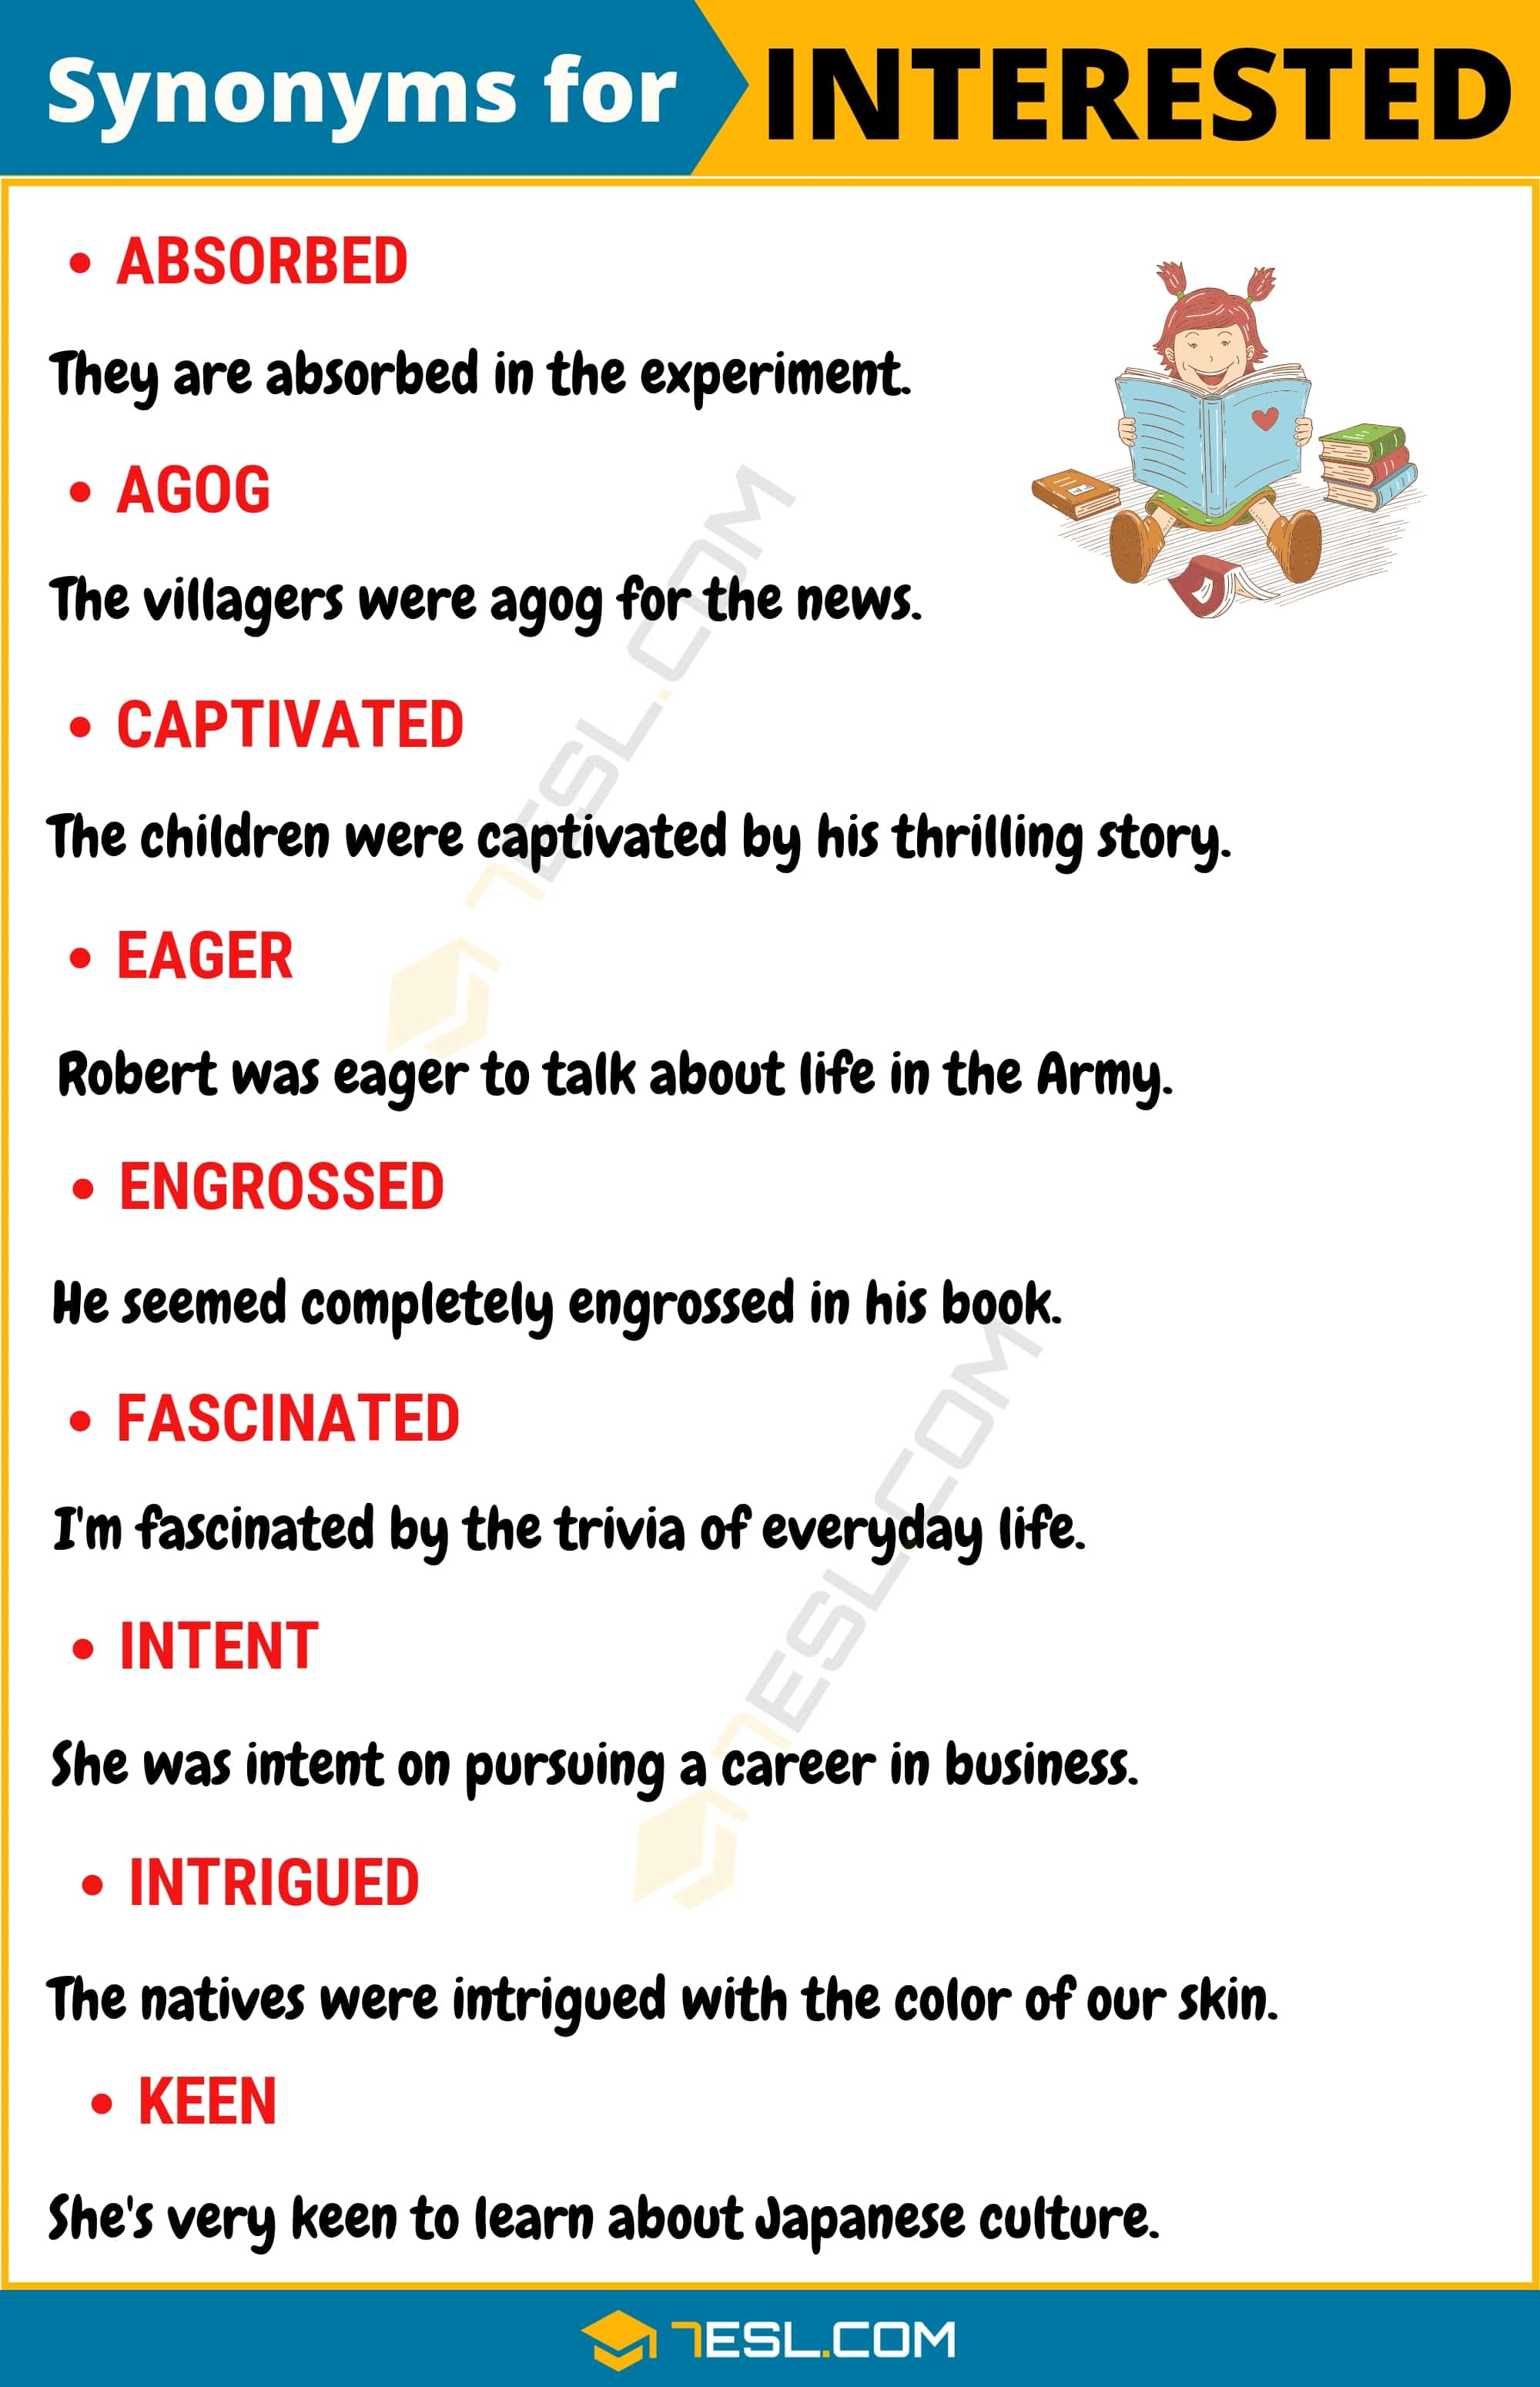 INTERESTED Synonym: List of 13 Synonyms for Interested with Examples